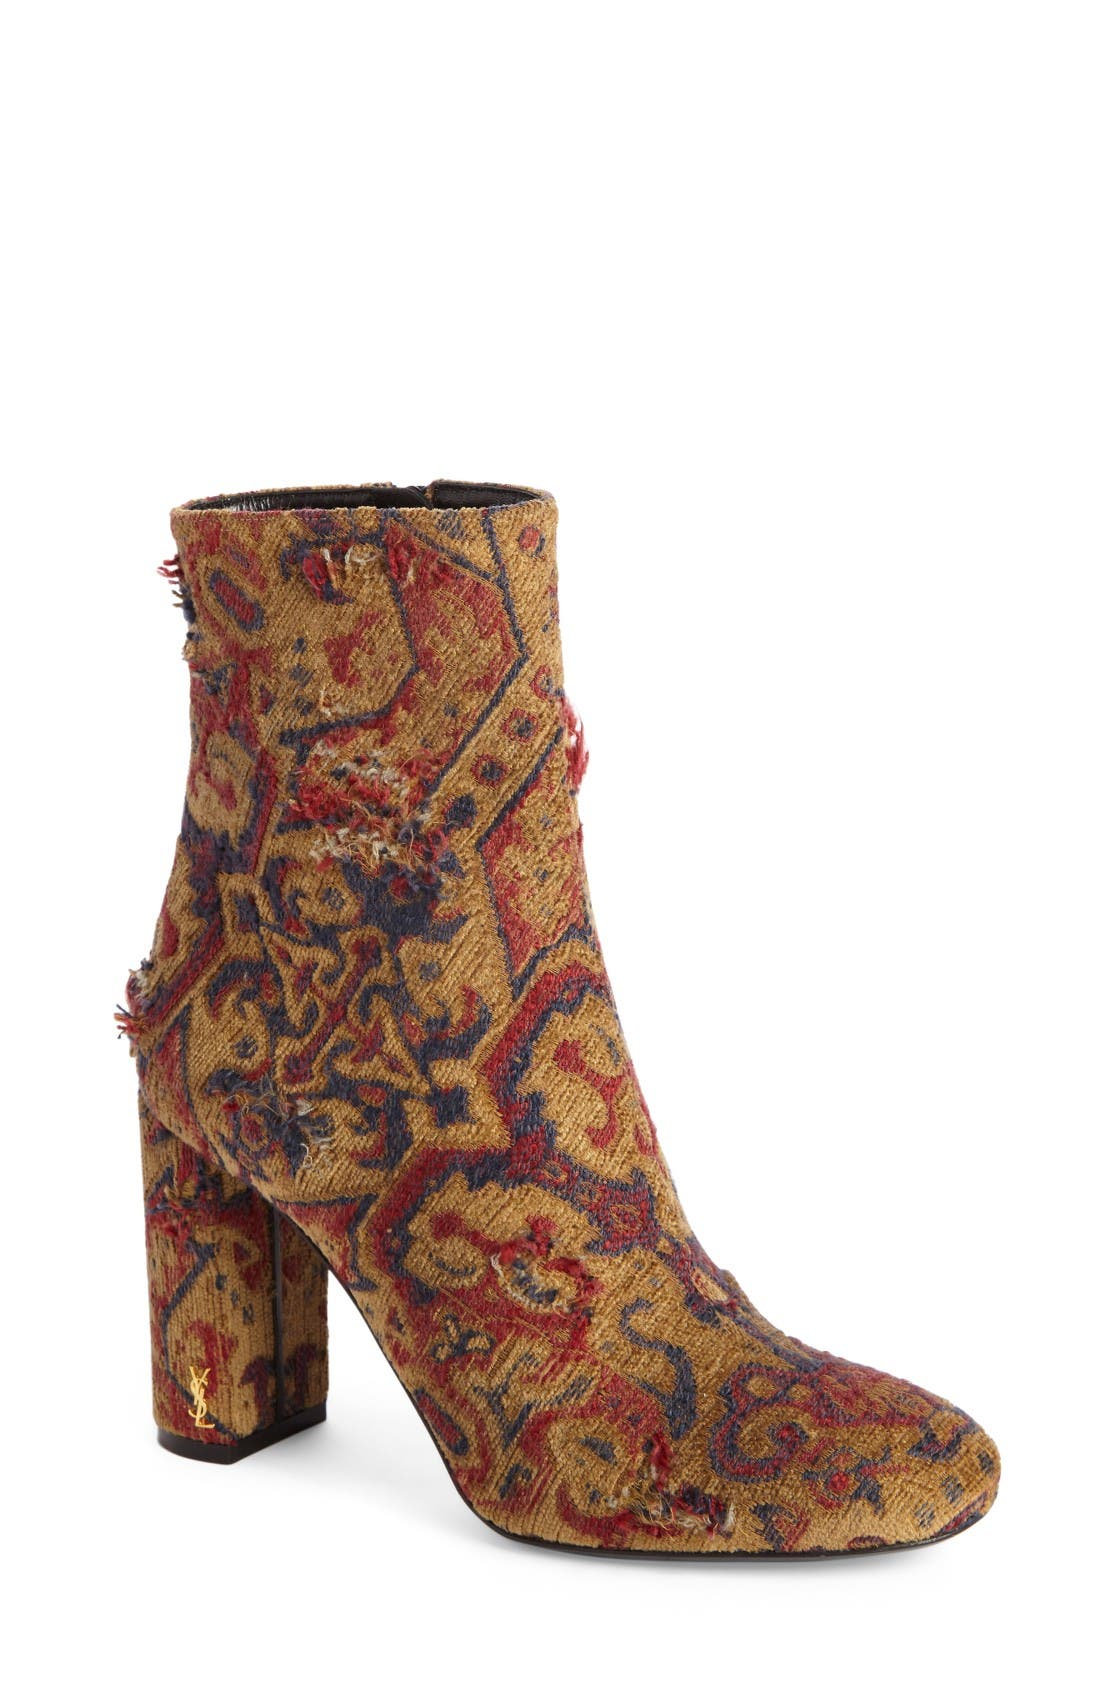 Main Image - Saint Laurent Loulou - Tapestry Bootie (Women)